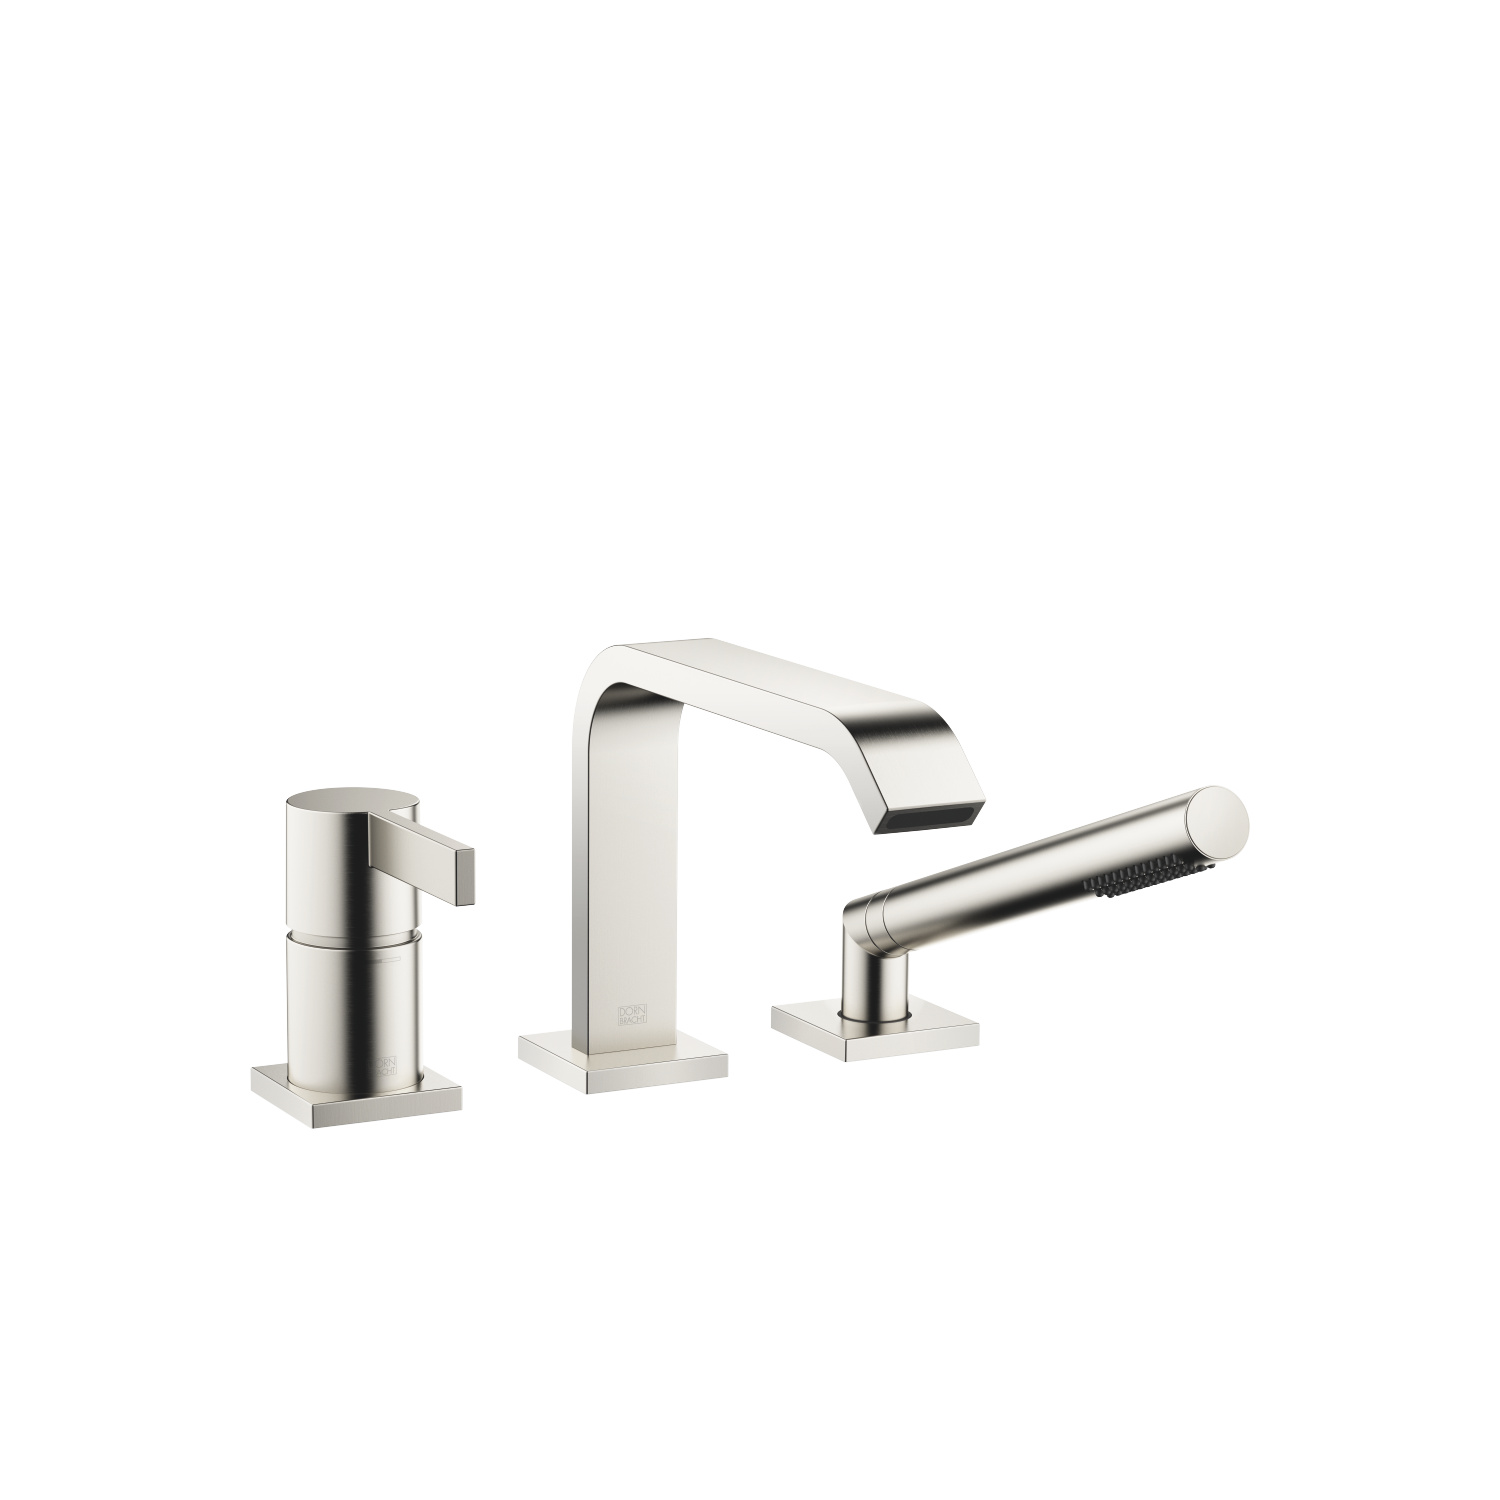 Three-hole single-lever bath mixer for bath rim or tile edge installation - platinum matt - 27 412 670-06